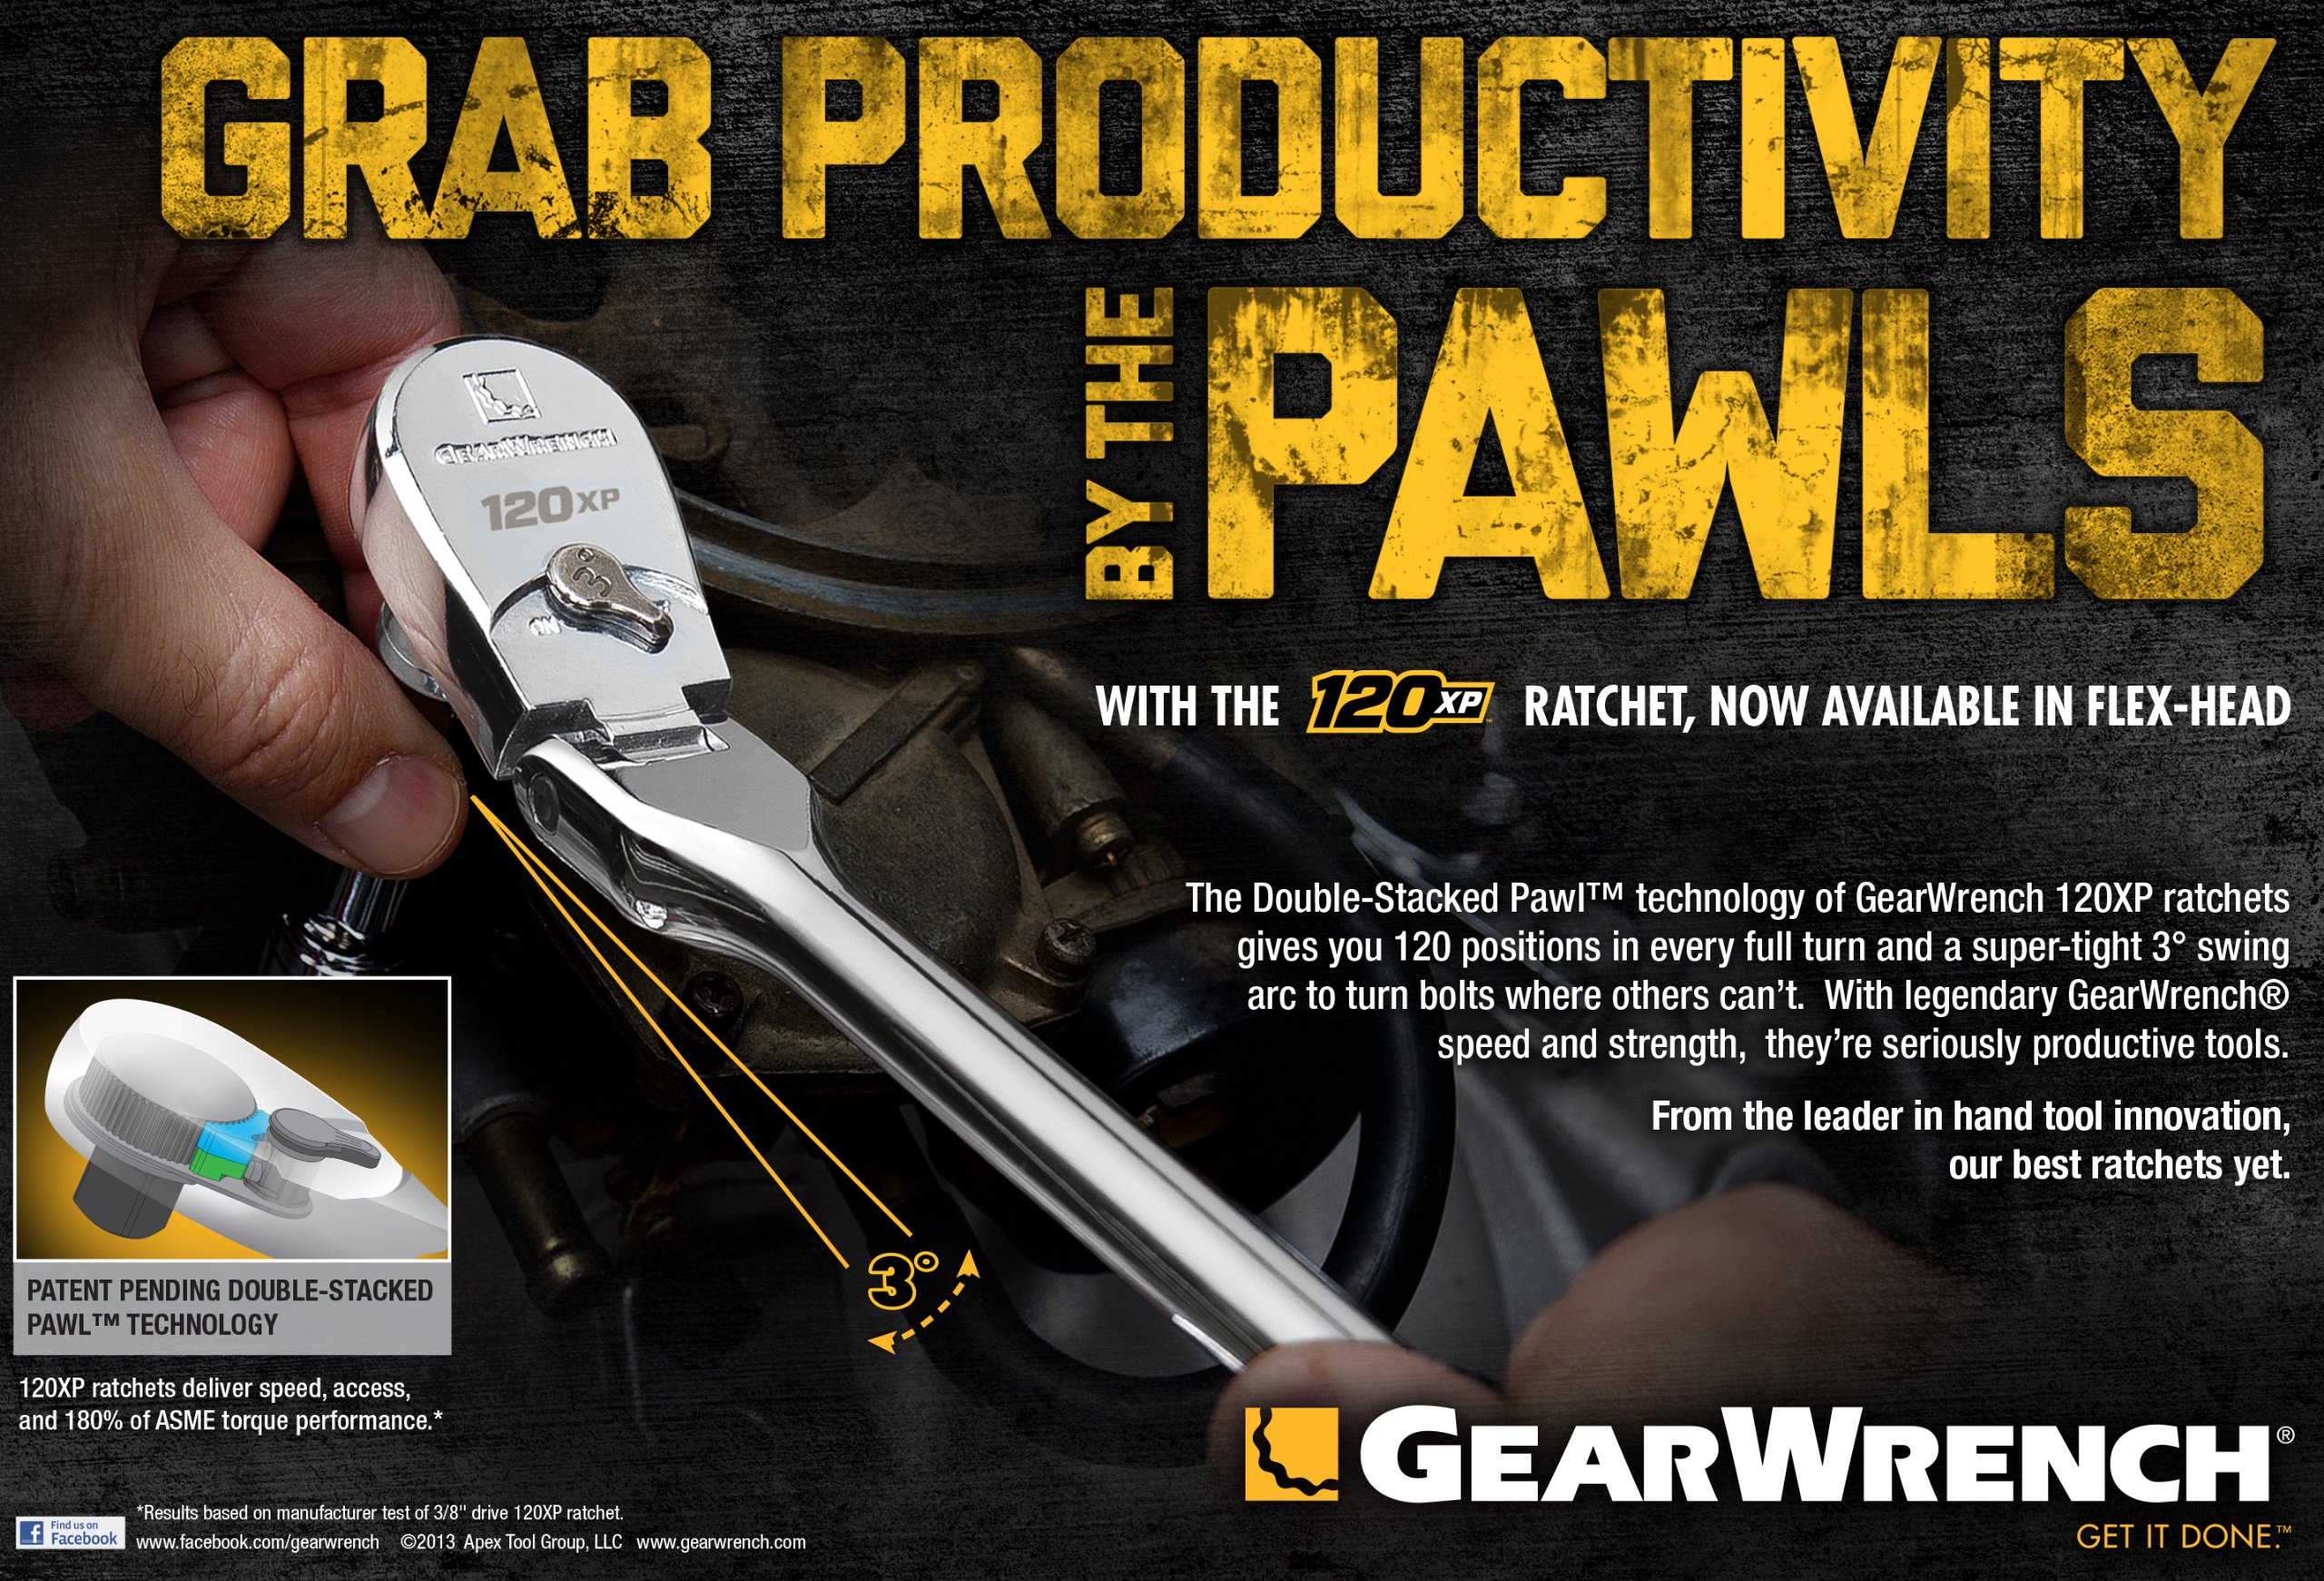 GearWrench 81012P 120XP Full Polish Flex Teardrop Ratchet, 1/4-Inch by Apex Tool Group (Image #7)